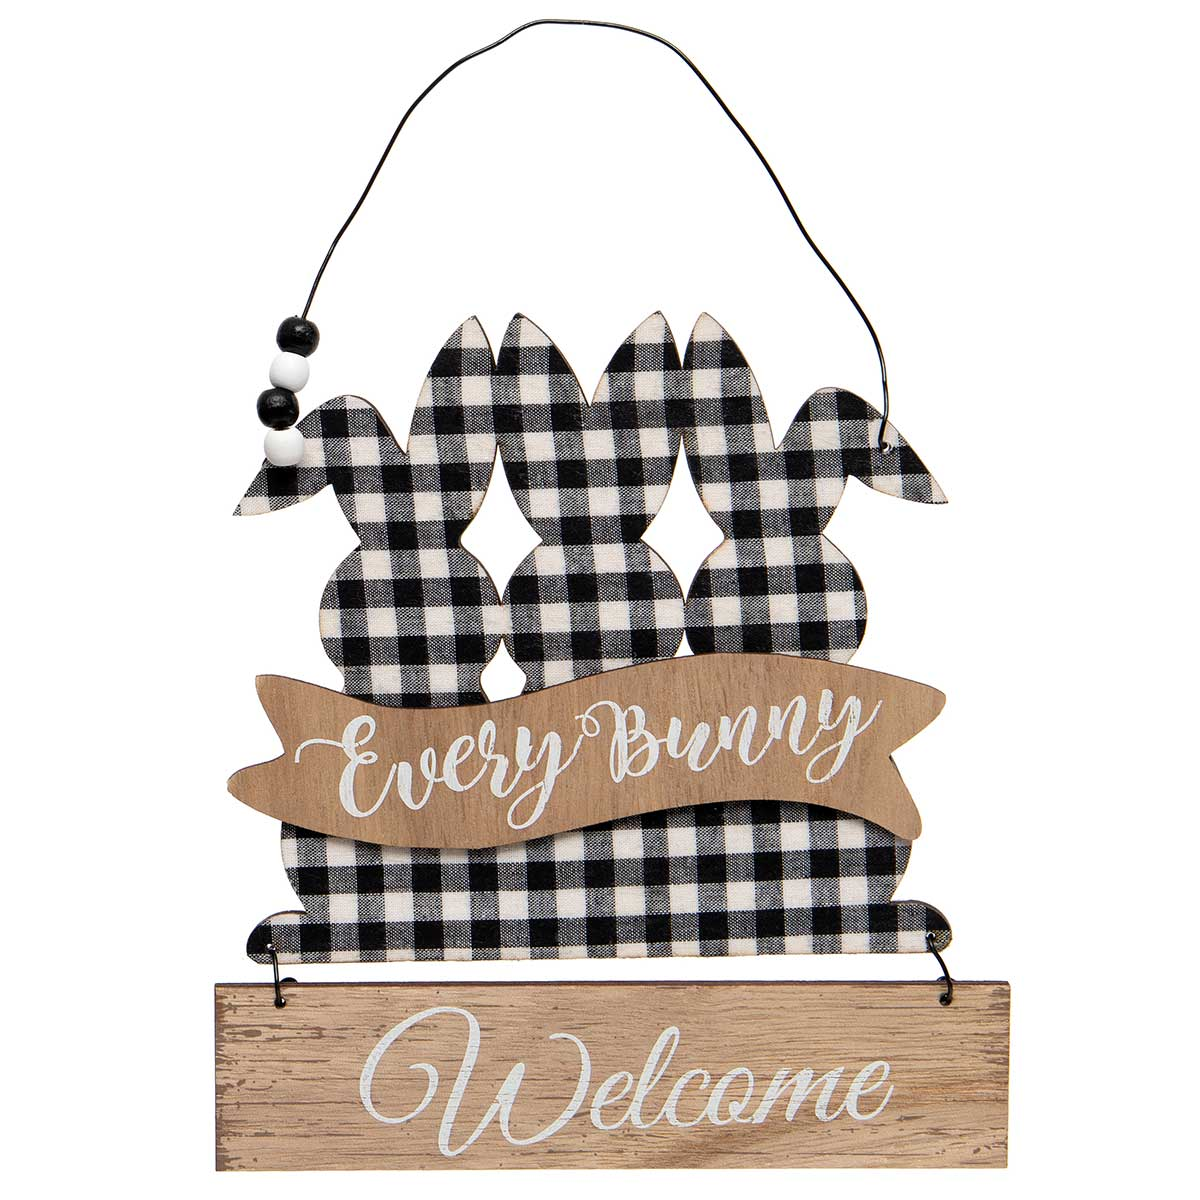 TRIPLE BUNNY EVERY BUNNY WELCOME SIGN WITH BLACK/WHITE PLAID BUN